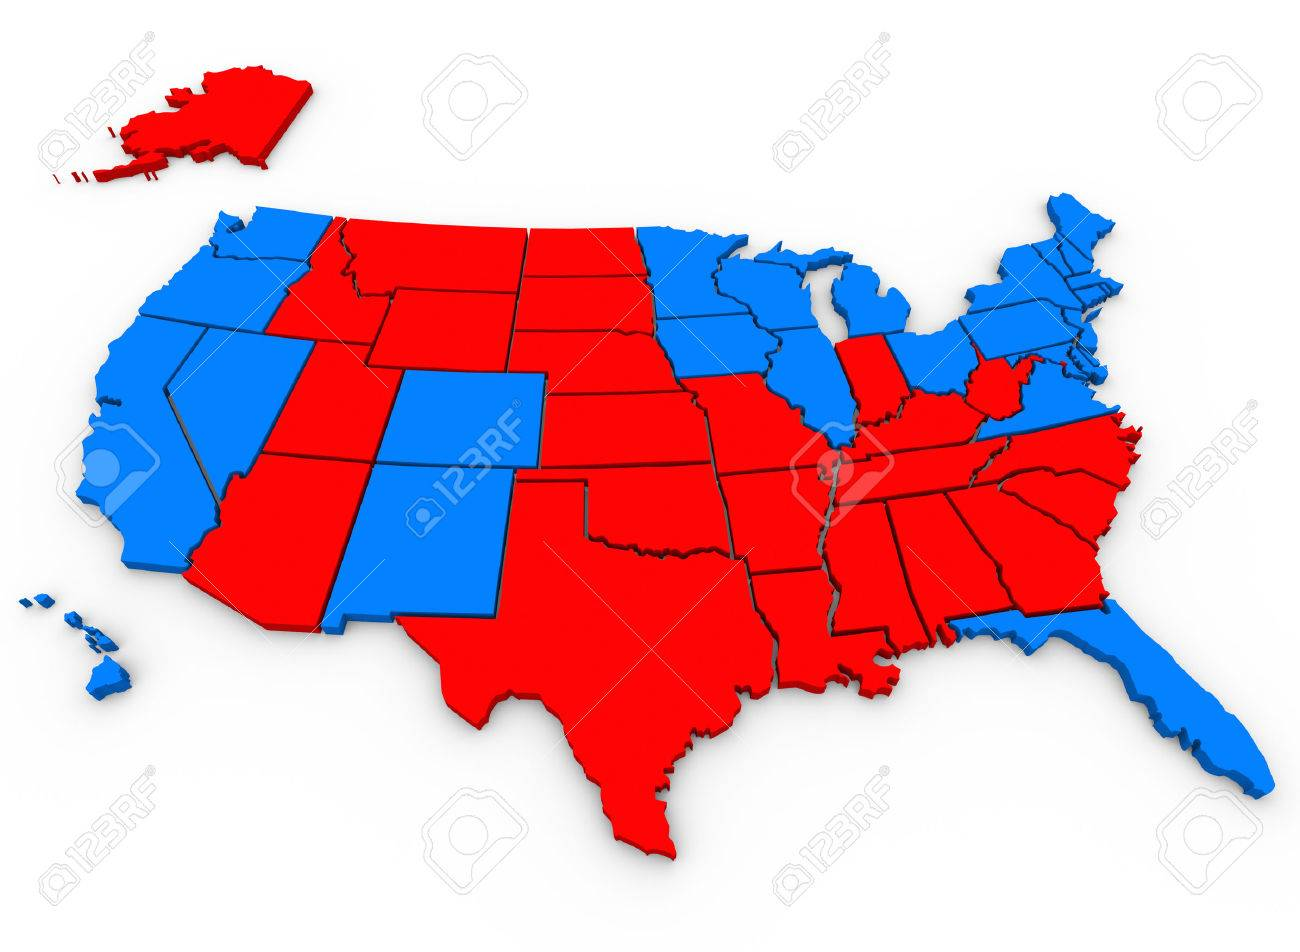 D Rendered Illustrated United States Of America Map Shows The - Map of red and blue states